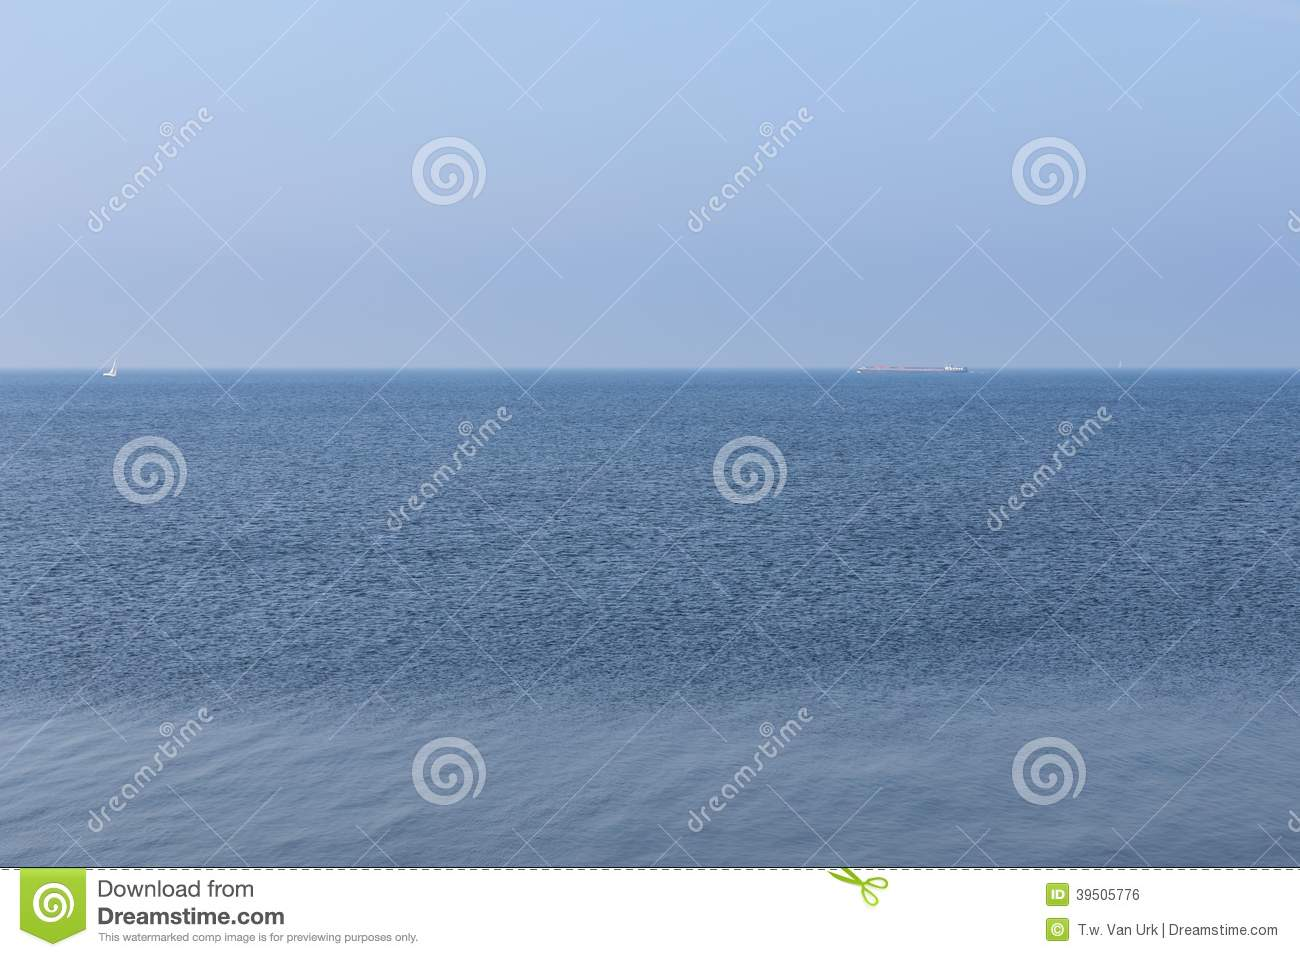 Endless Dutch sea with blue sky